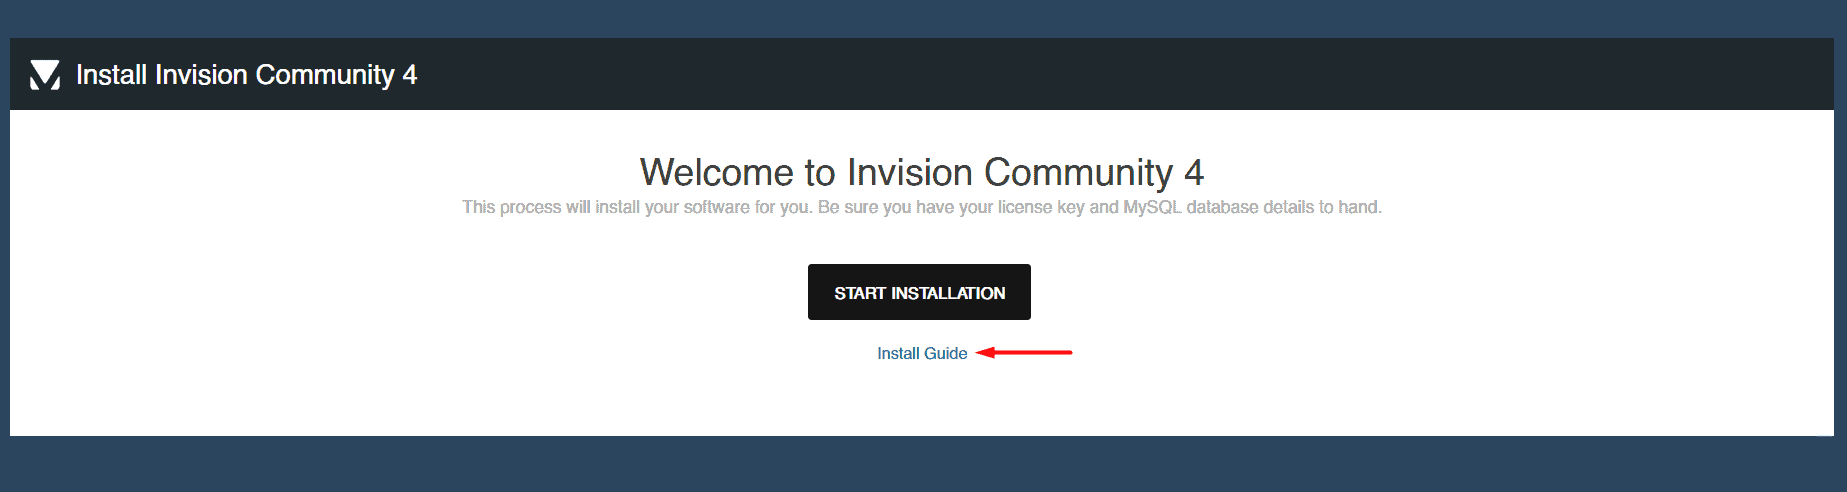 install memberfix - Integration of Invision Community with WordPress SSO